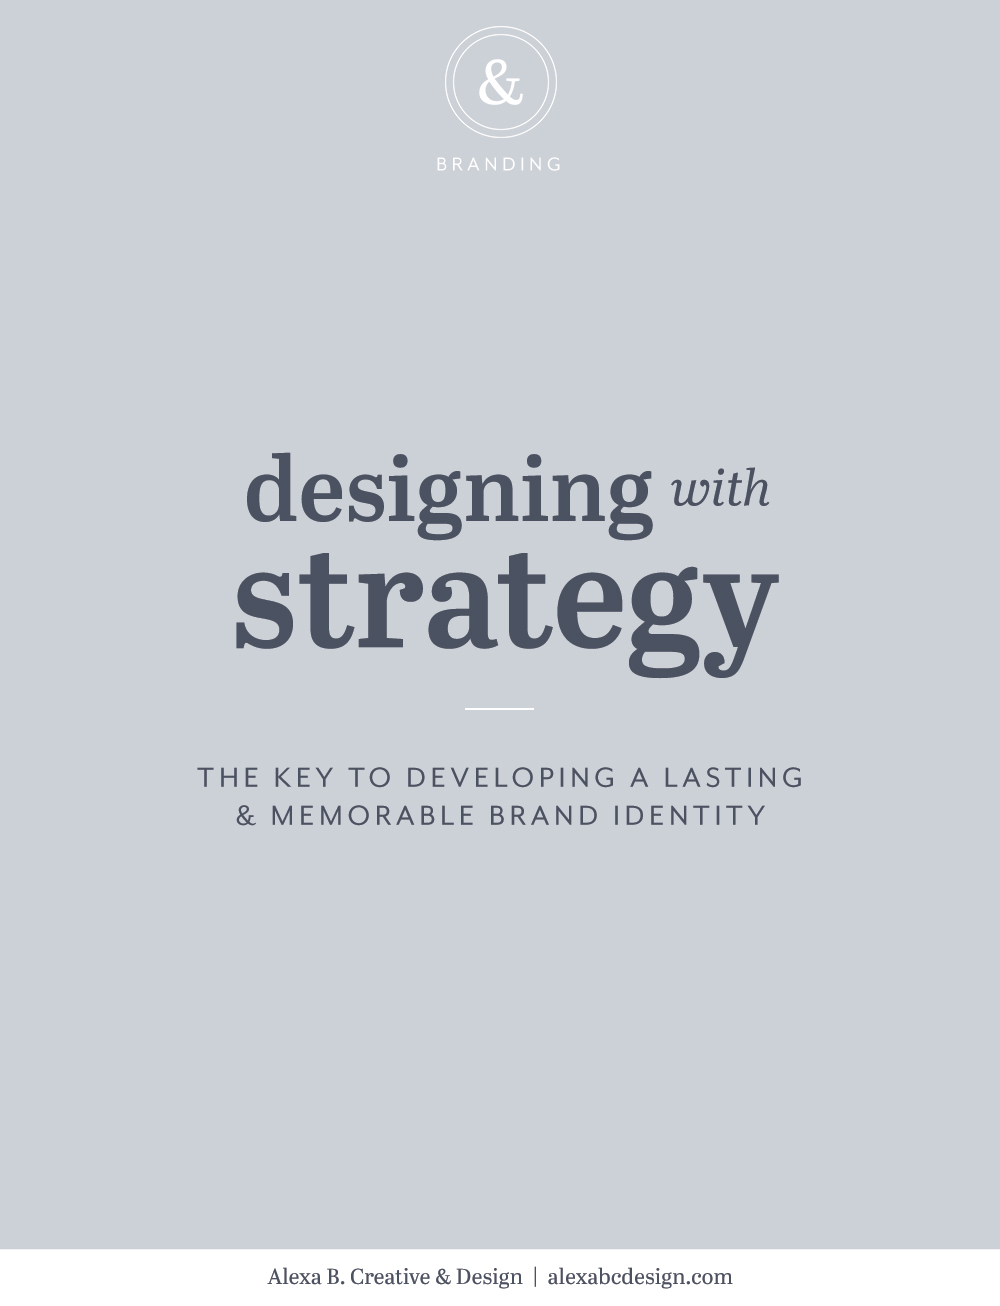 Designing with Strategy: The Key to Developing a Lasting & Memorable Brand Identity | Alexa B. Creative & Design